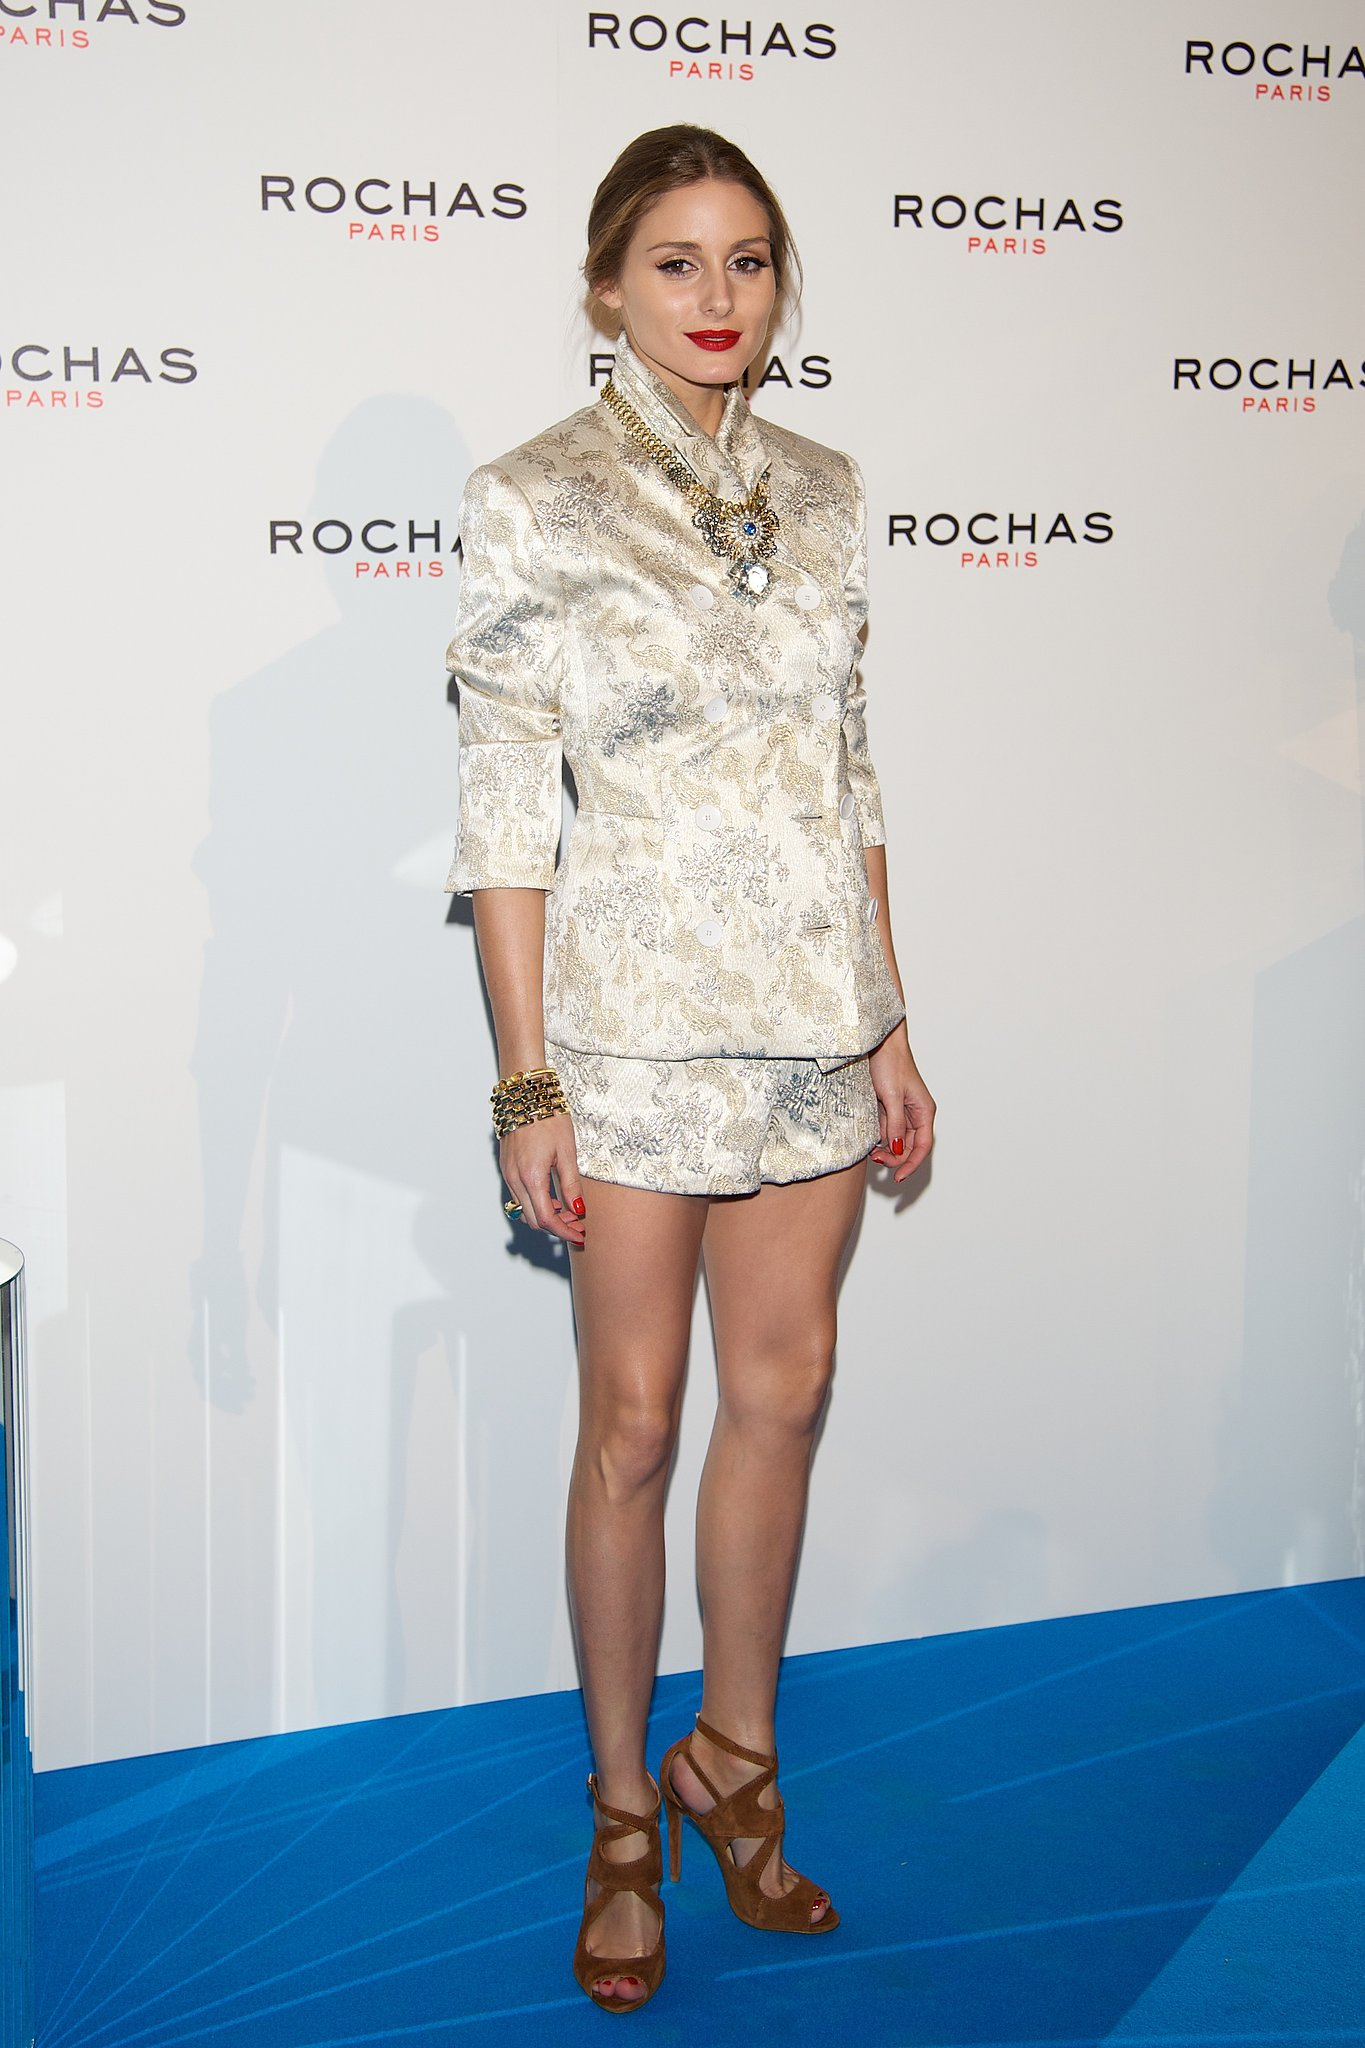 Olivia Palermo wore Rochas at a Rochas event in Madrid.